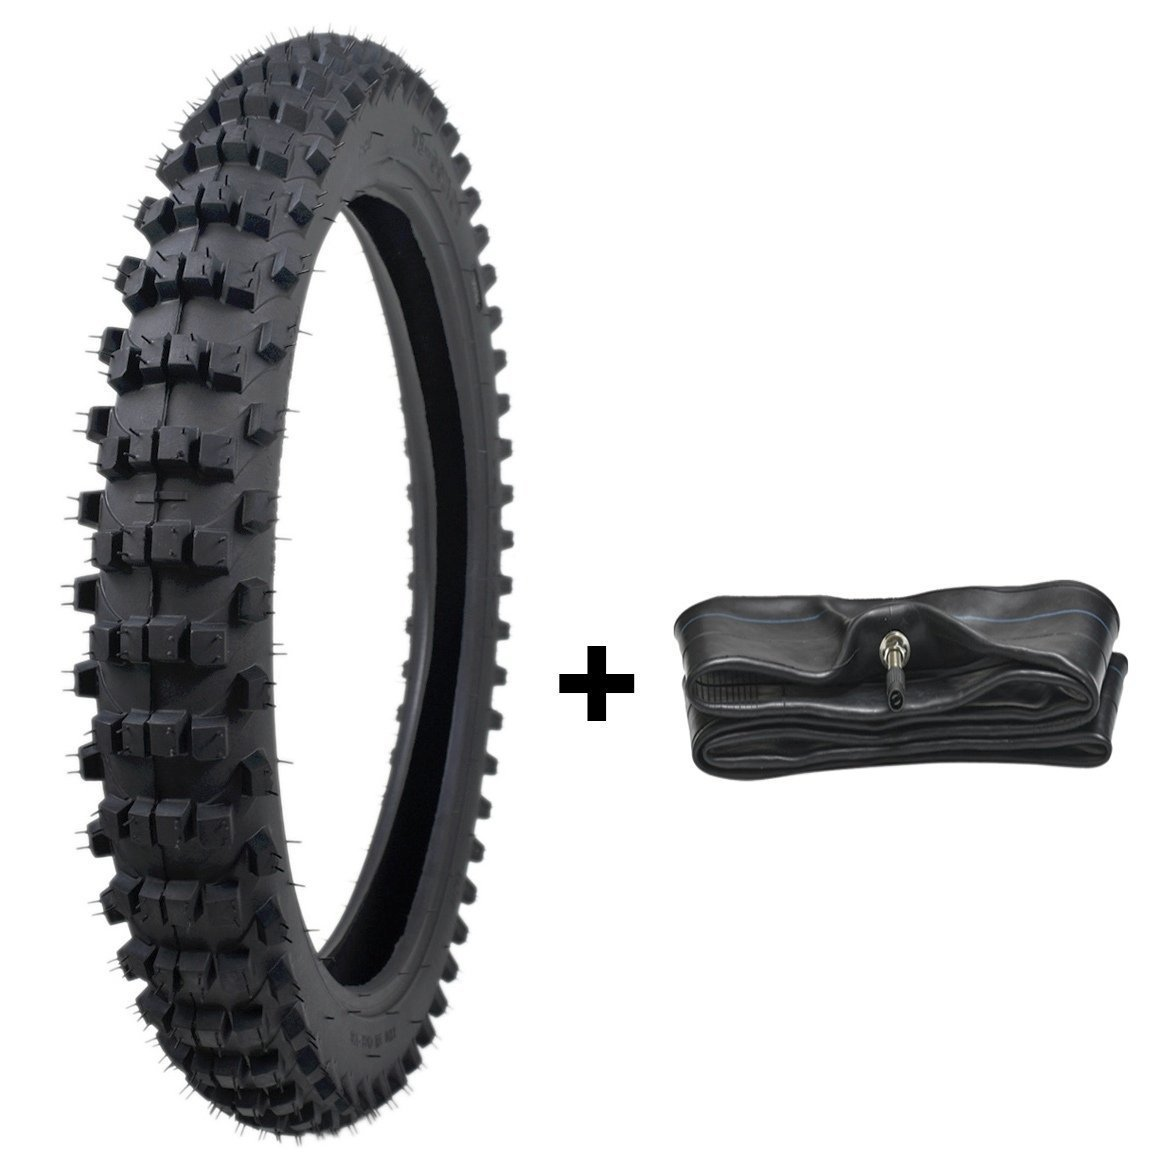 ZXTDR 70/100-17 Tire and Tube Set 2.25-2.50x17 Tires and Inner Tubes for Motorcycle